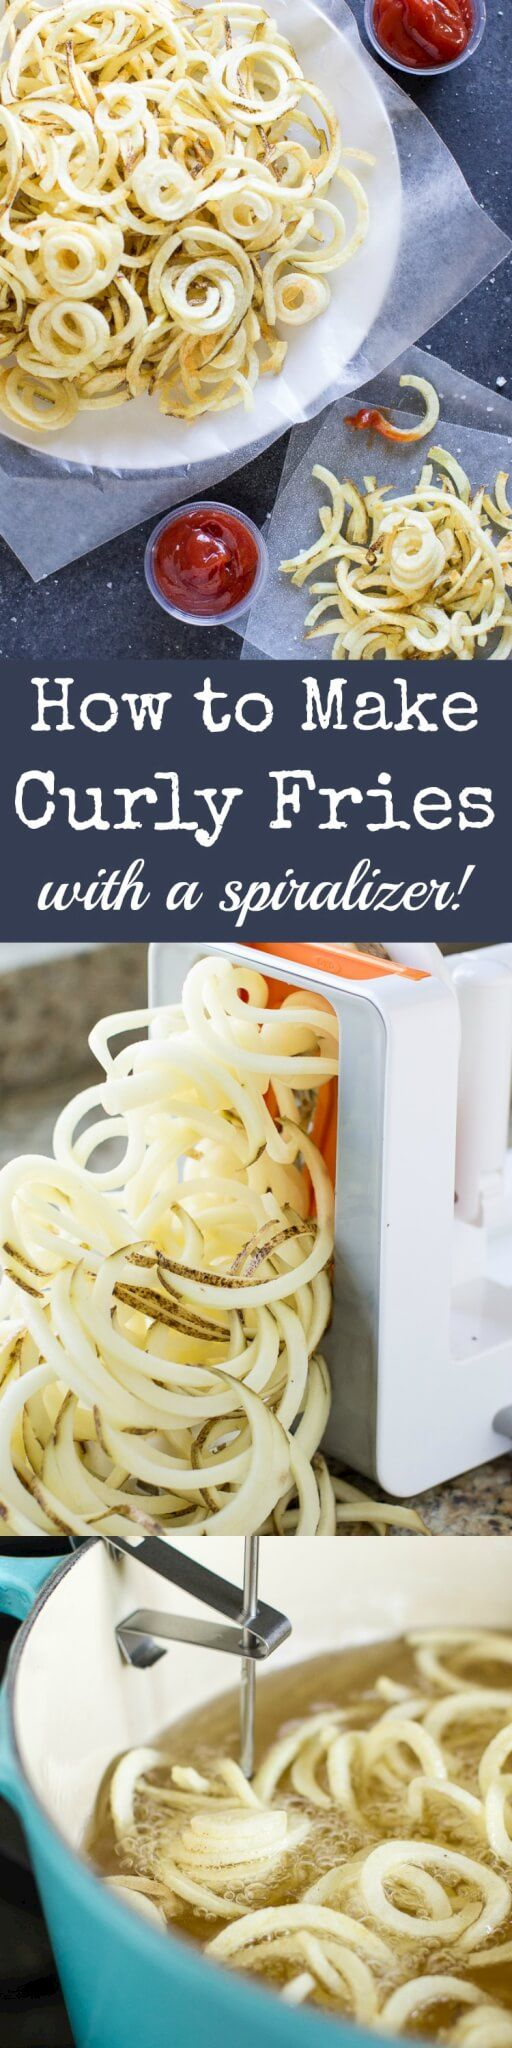 Welcome to your fool-proof guide on how to make Curly Fries! With the help of my secret weapon, turn regular or sweet potatoes into the crispy French fries of your dreams.